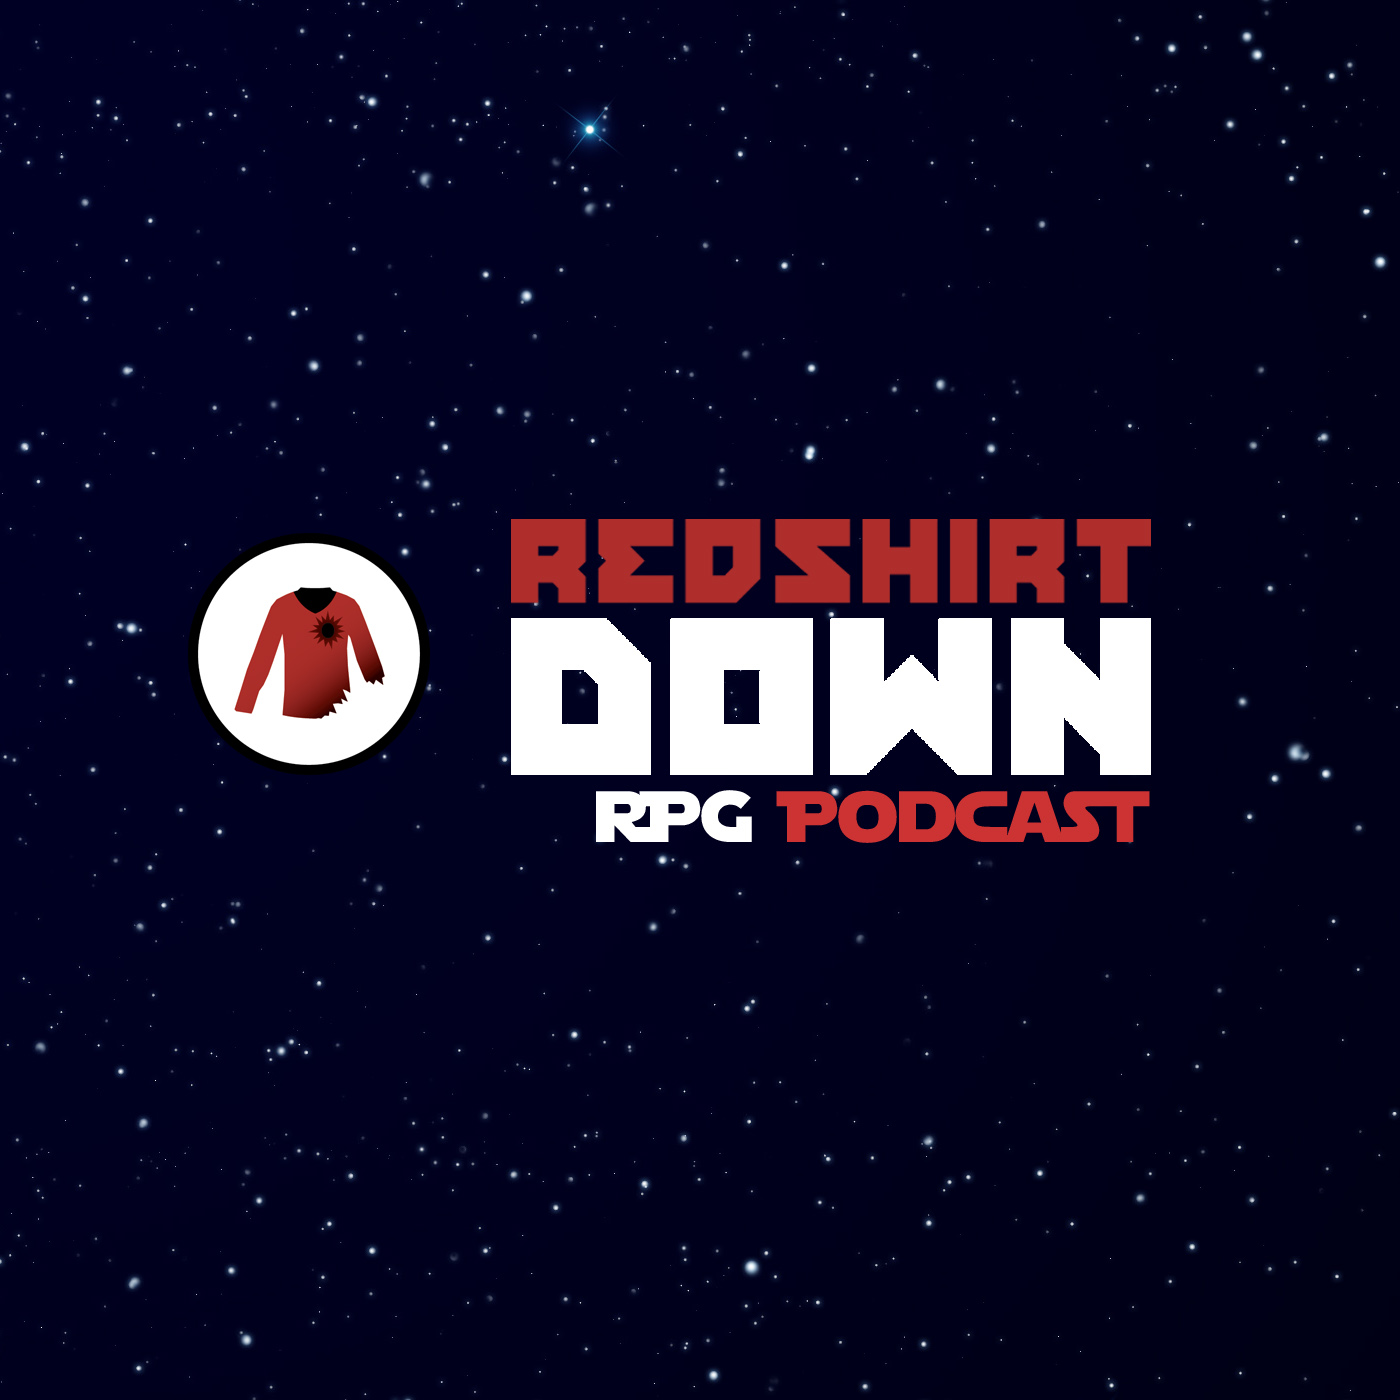 Red Shirt Down RPG Podcast show art